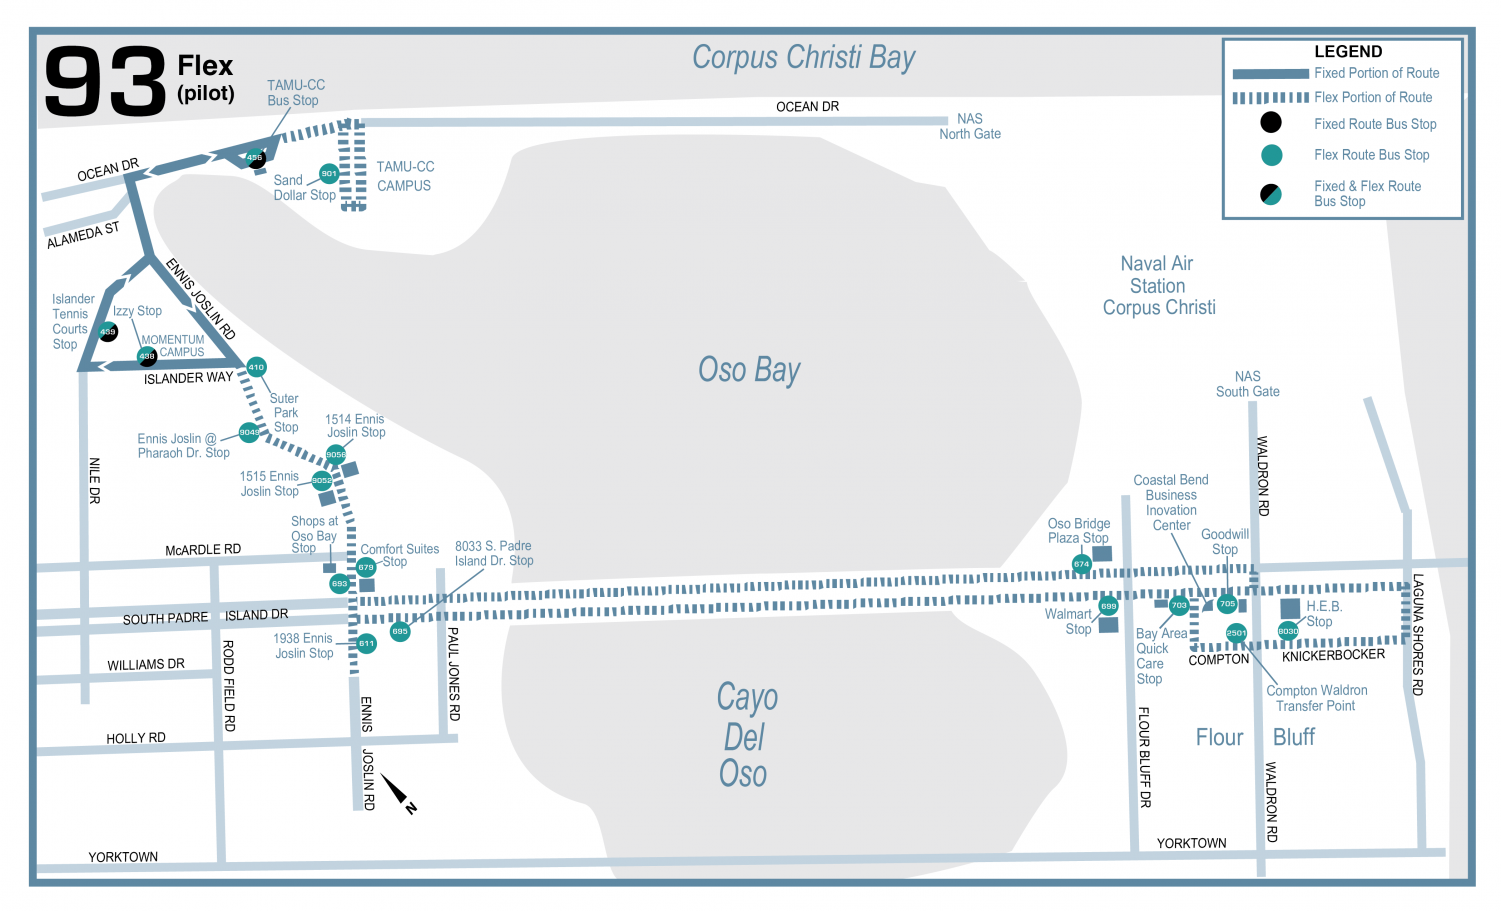 Courtesy of Corpus Christi Regional Transportation Authority. CCRTA closes Route 63 The Wave for new,on-call Route 93.